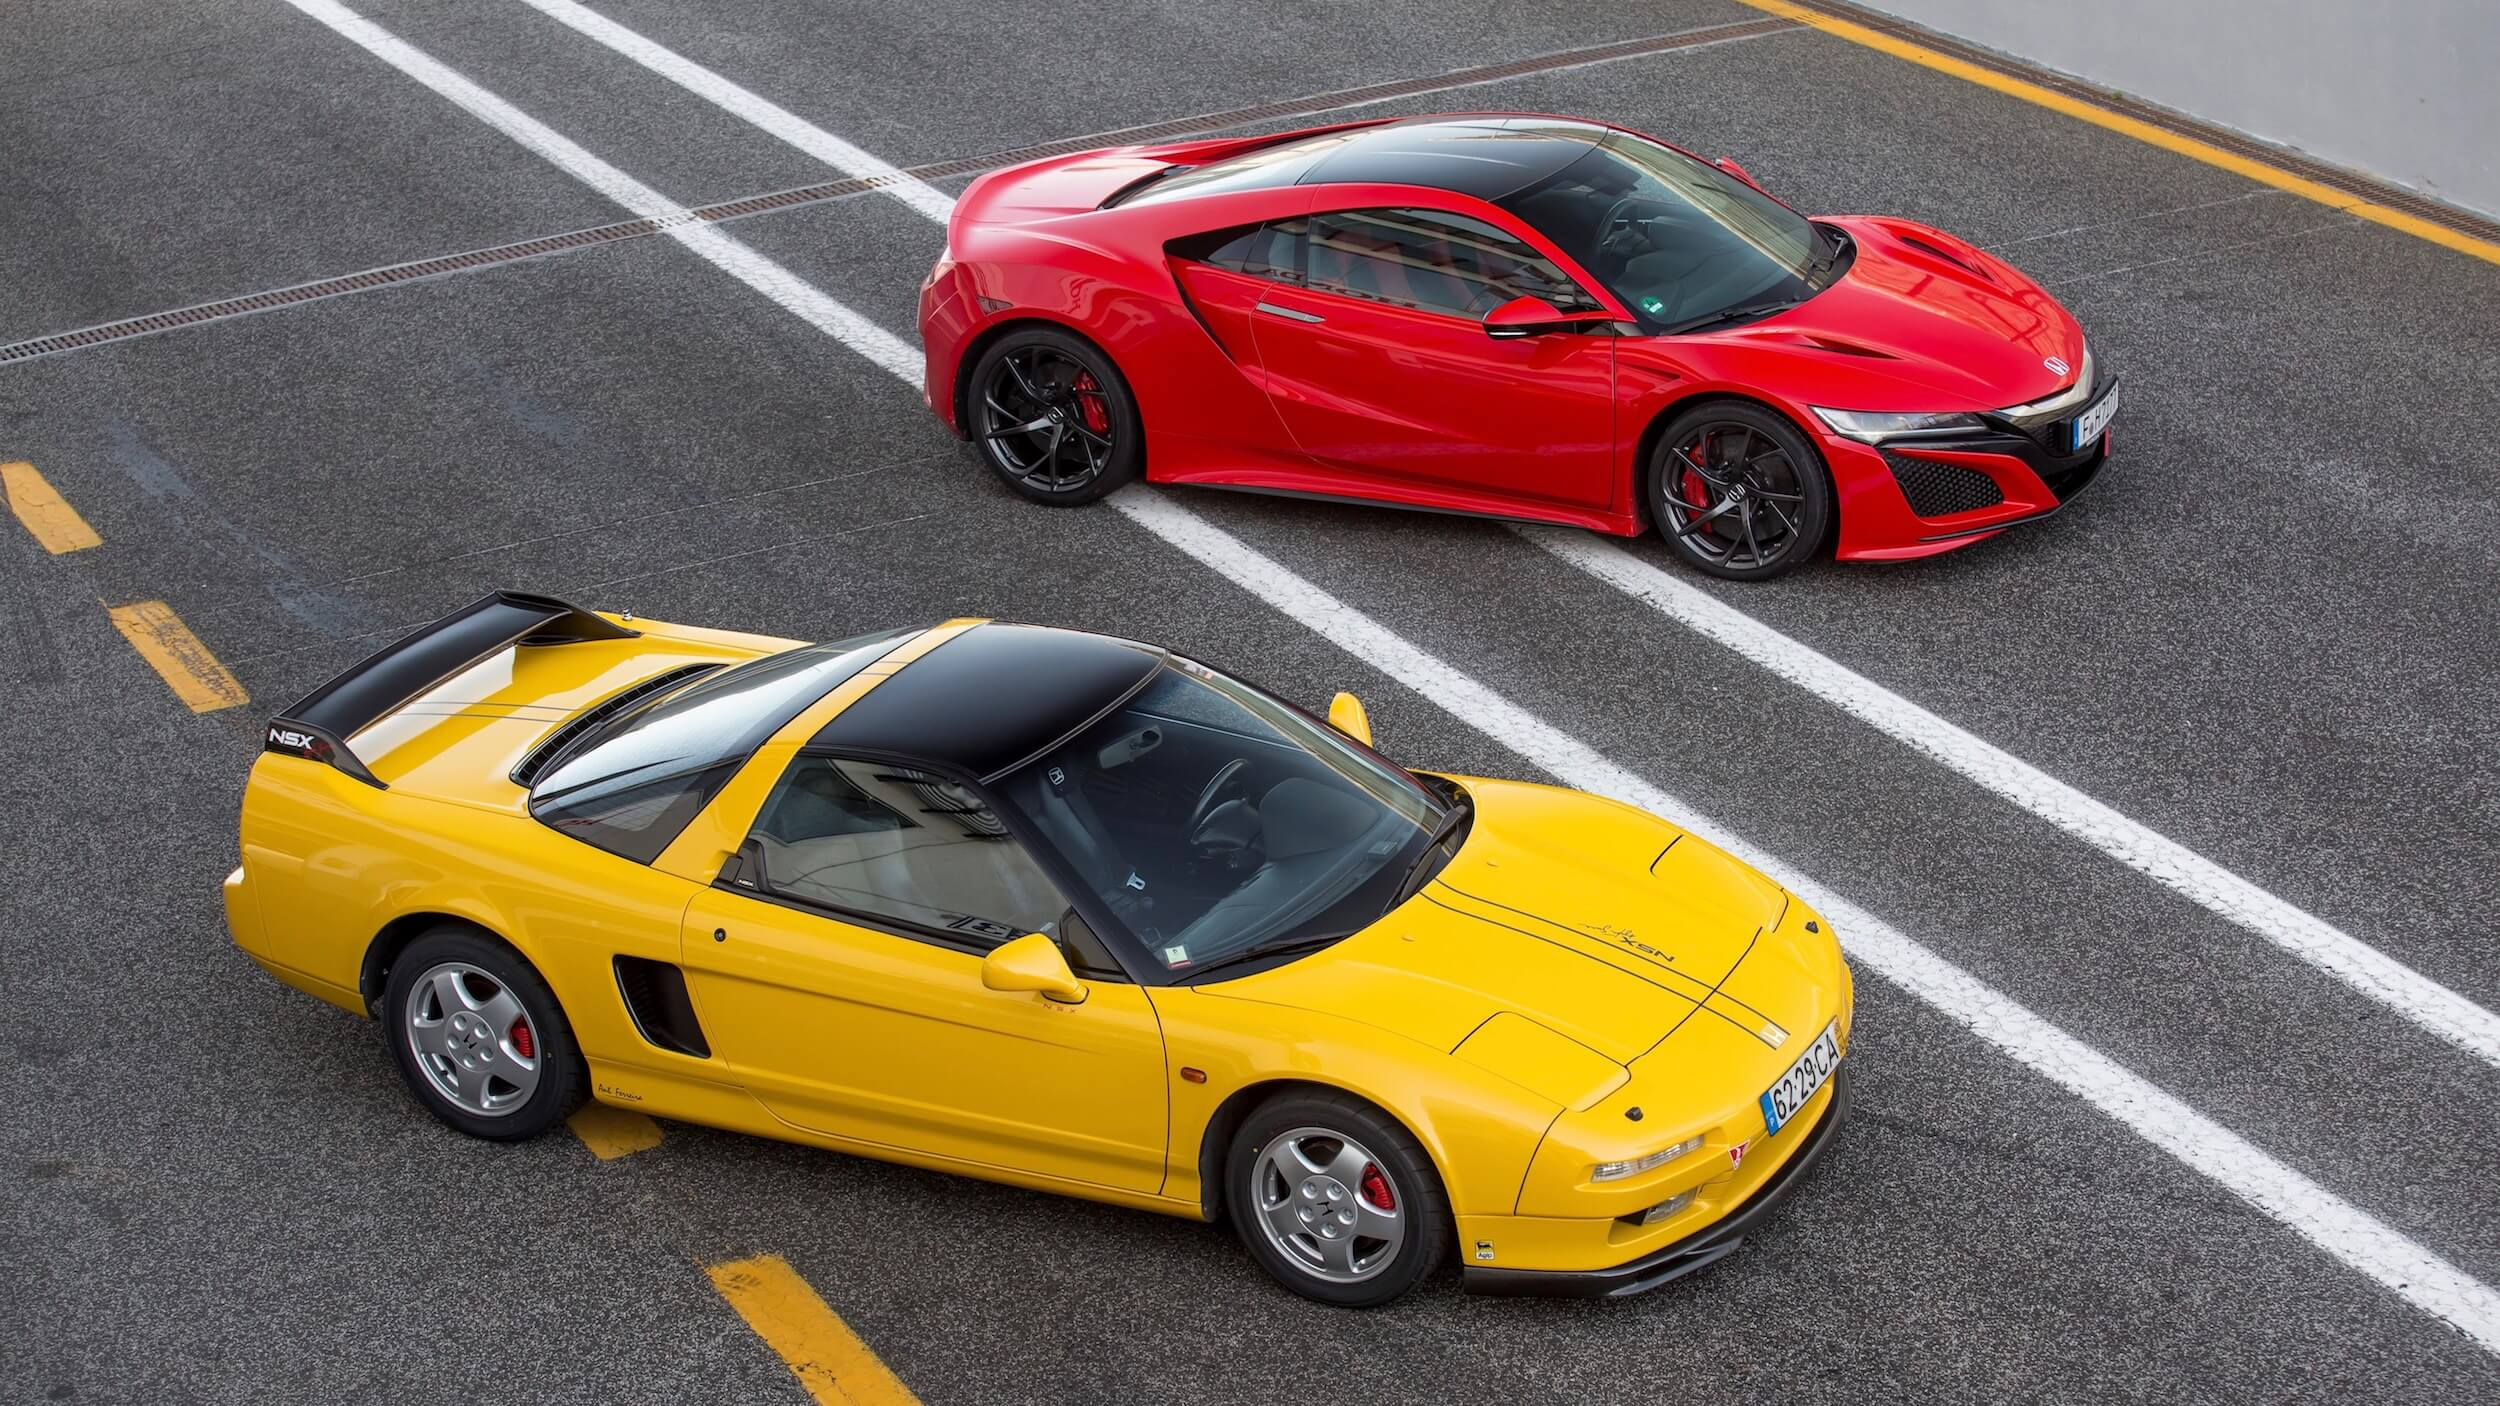 Honda NSX old vs new